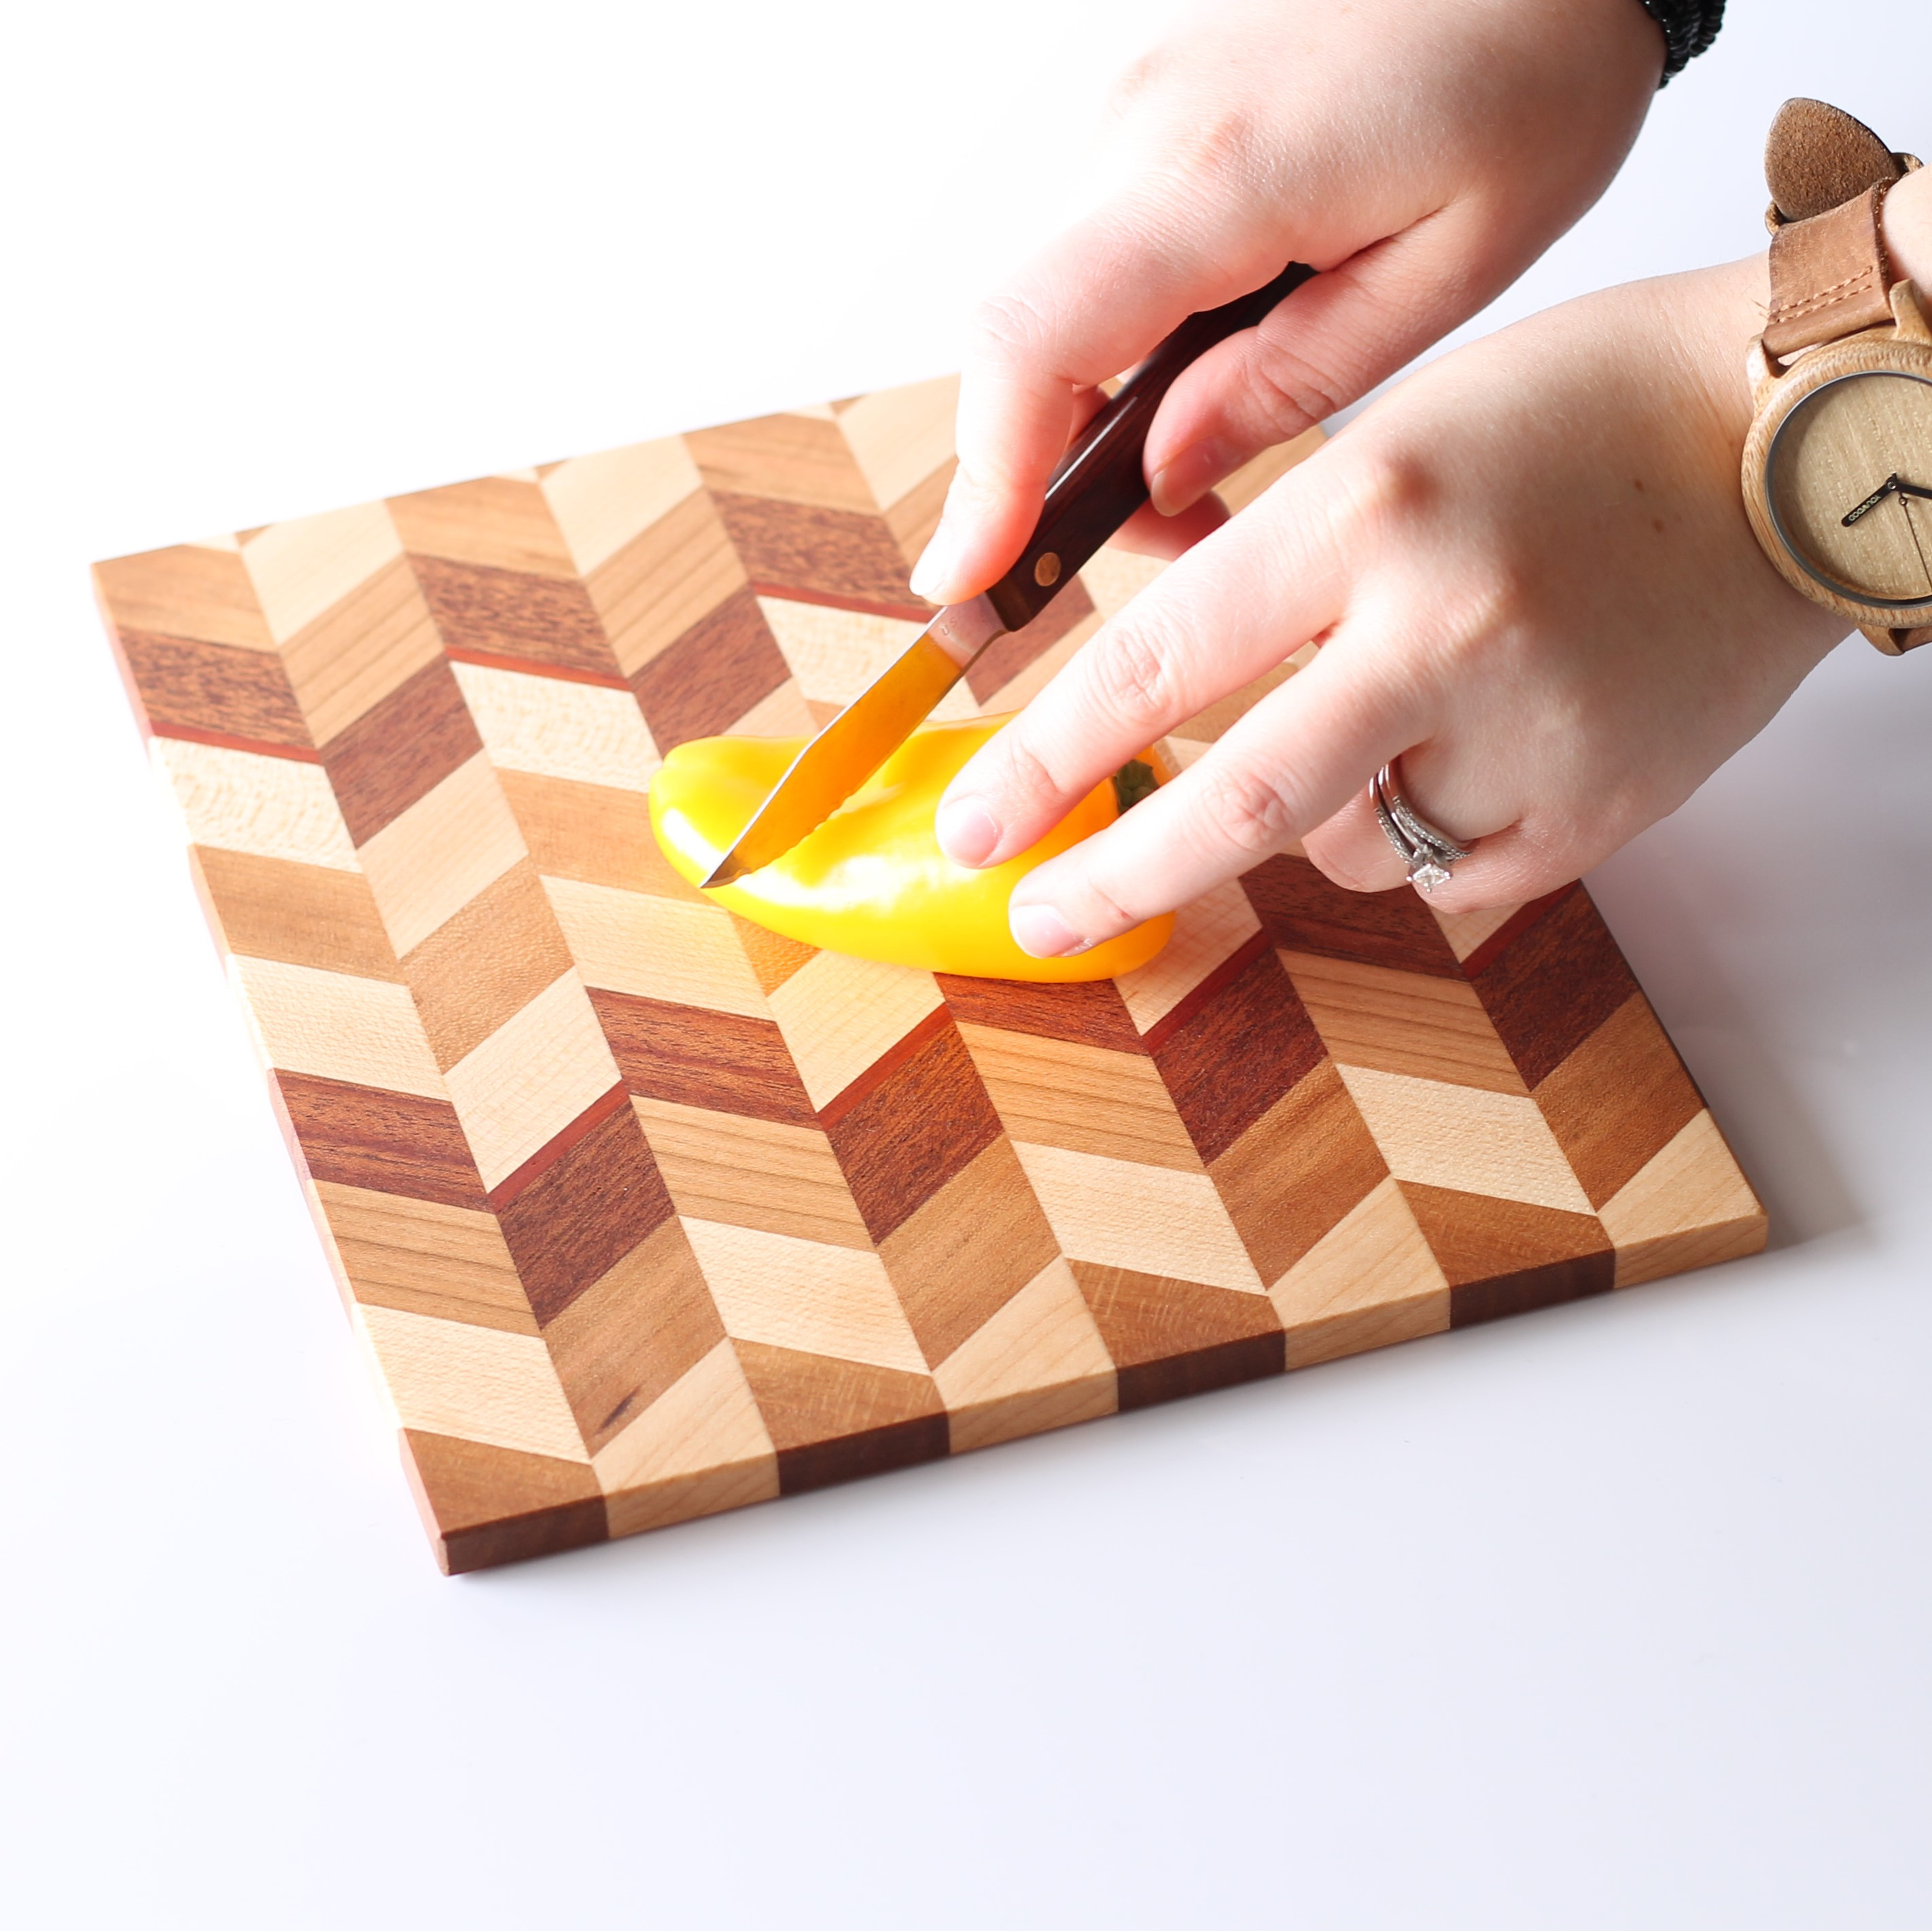 Completely new Checkered Trivets | JK Creative Wood NP55